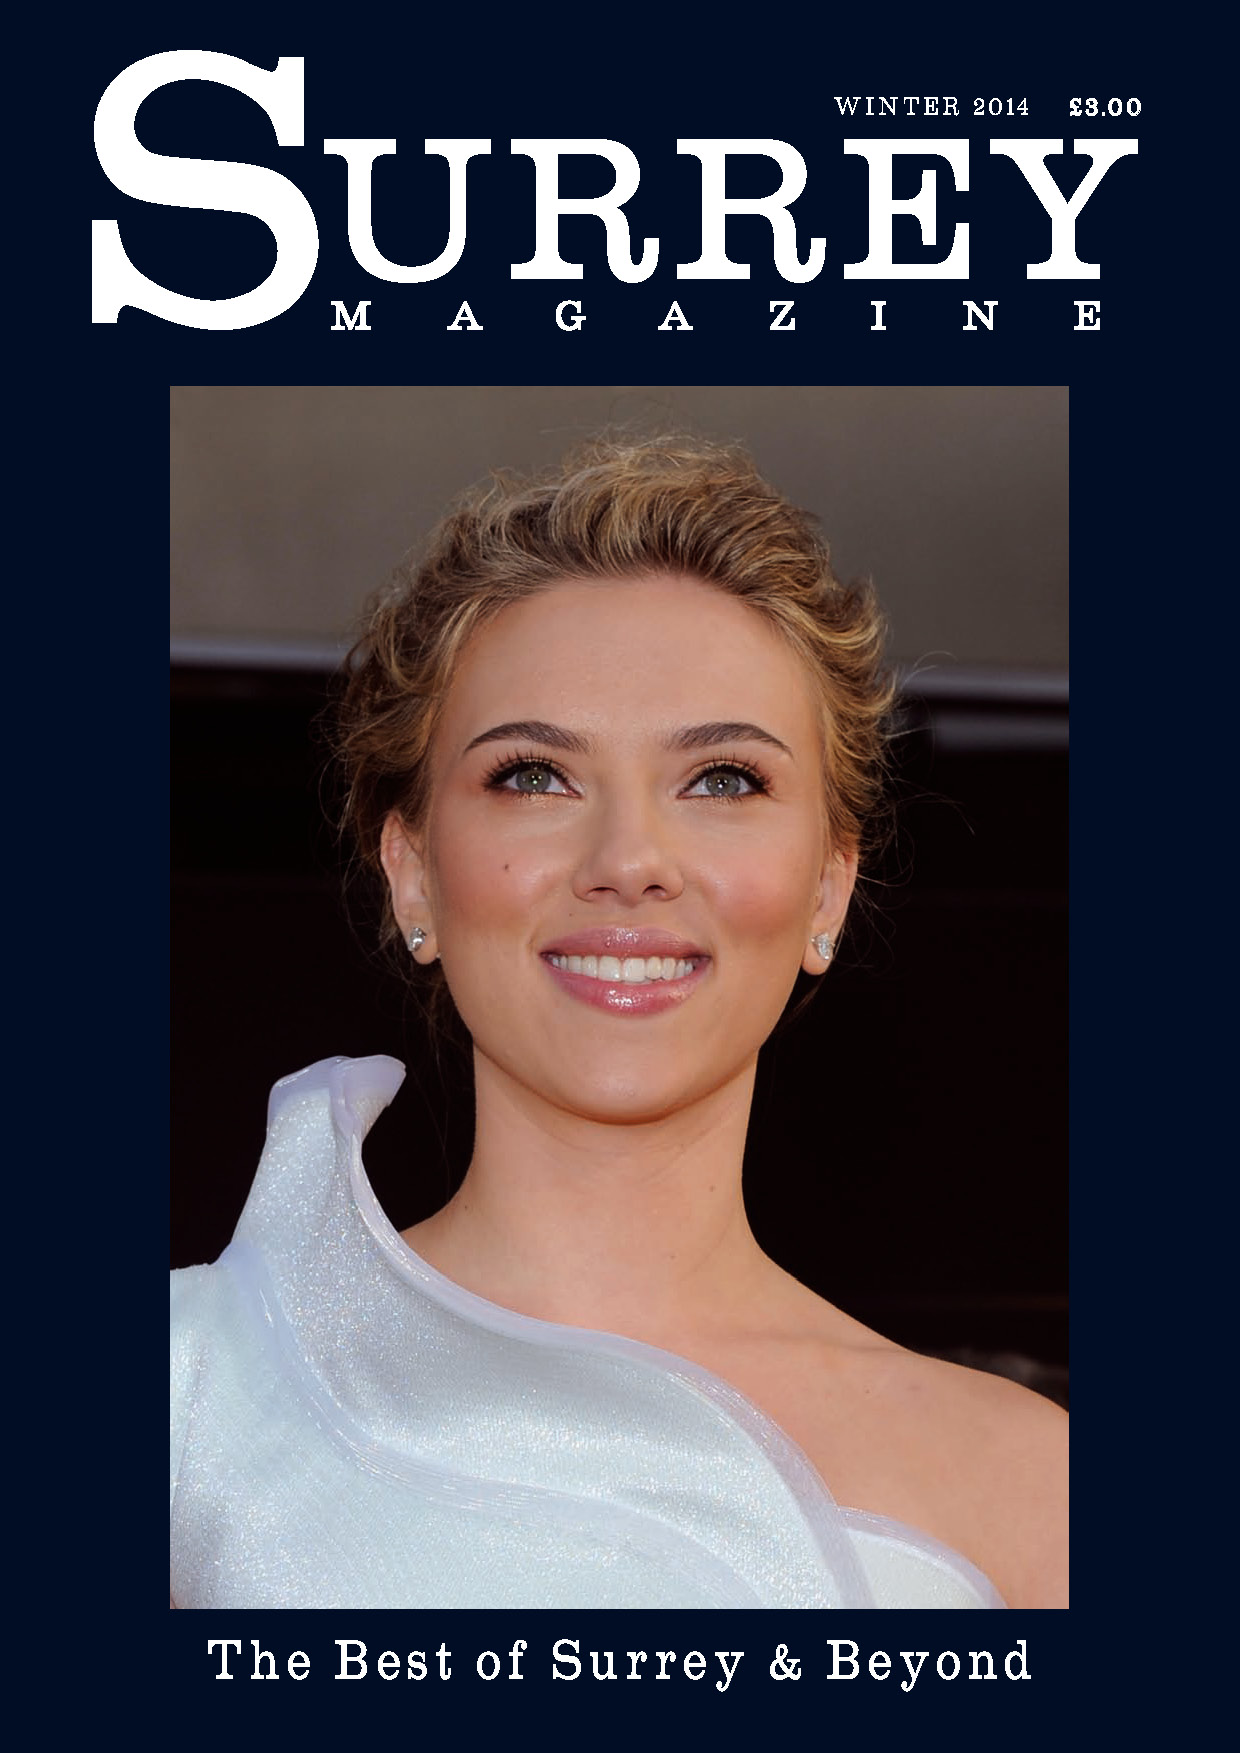 Surrey Magazine - The Best of Surrey and Beyond - Winter 2014 edition